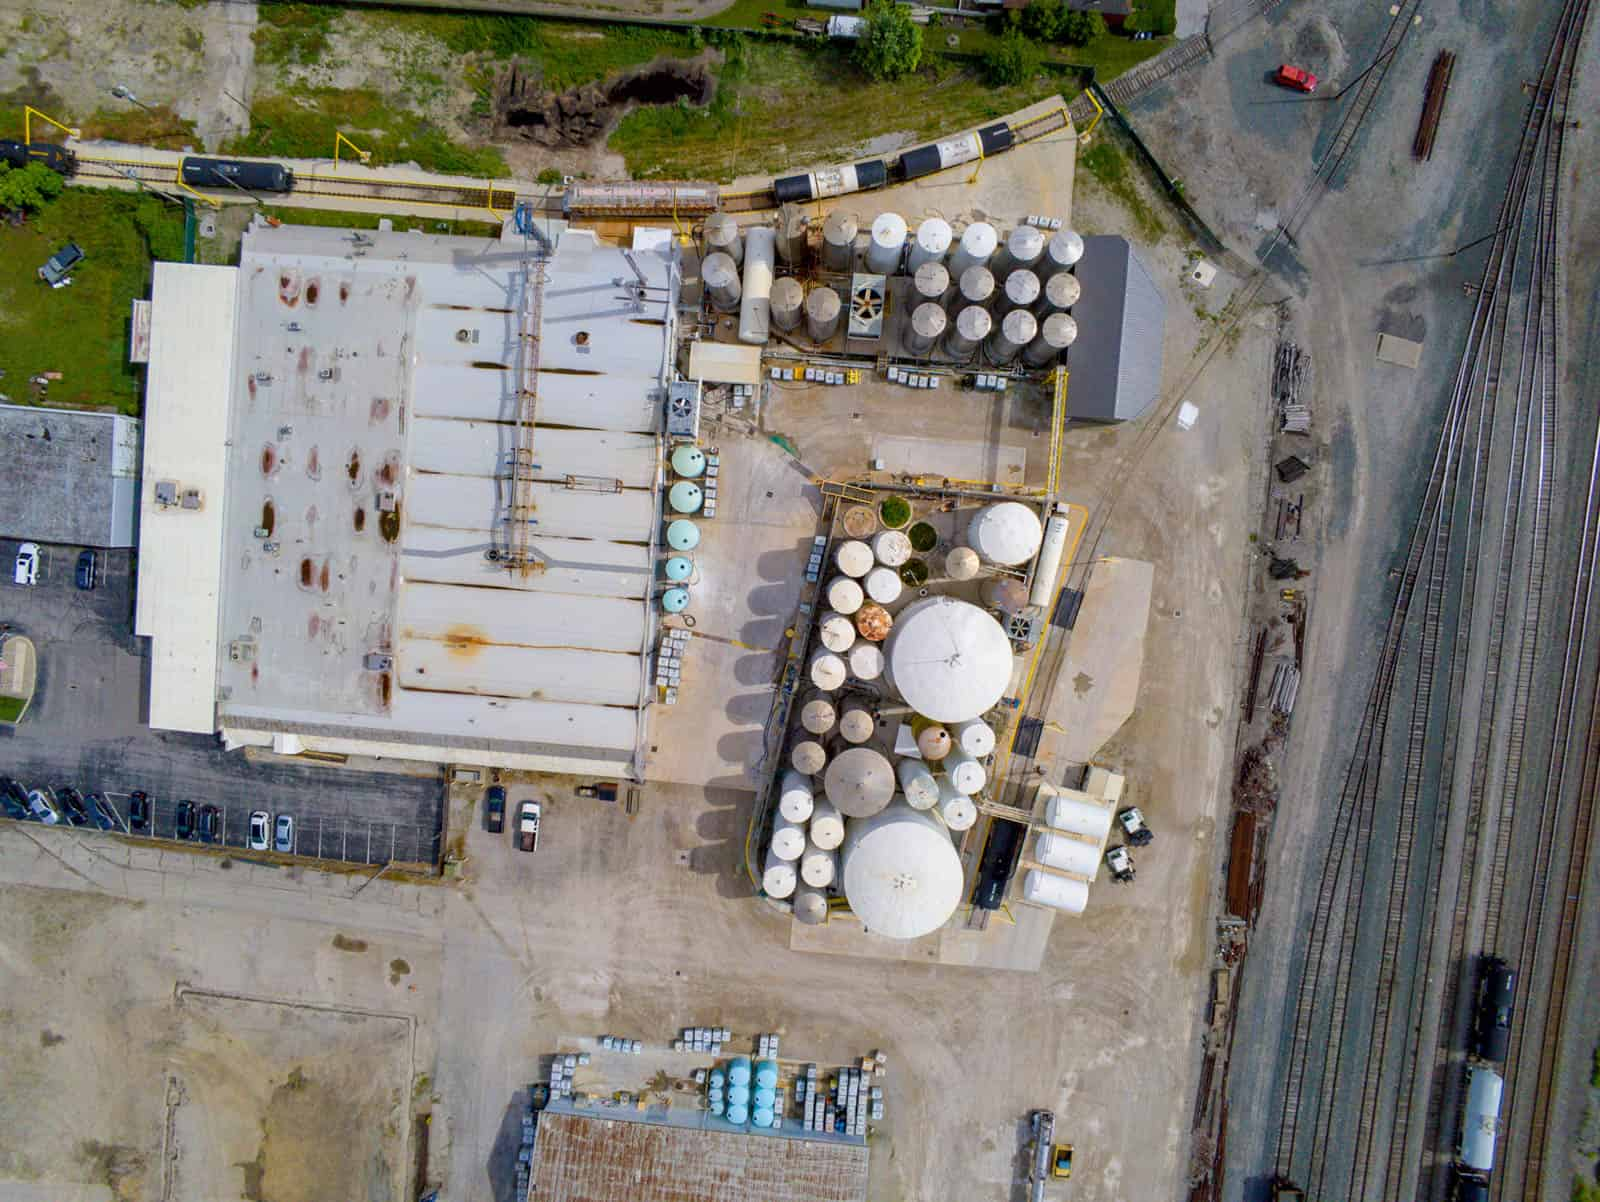 drone inspection photo of building